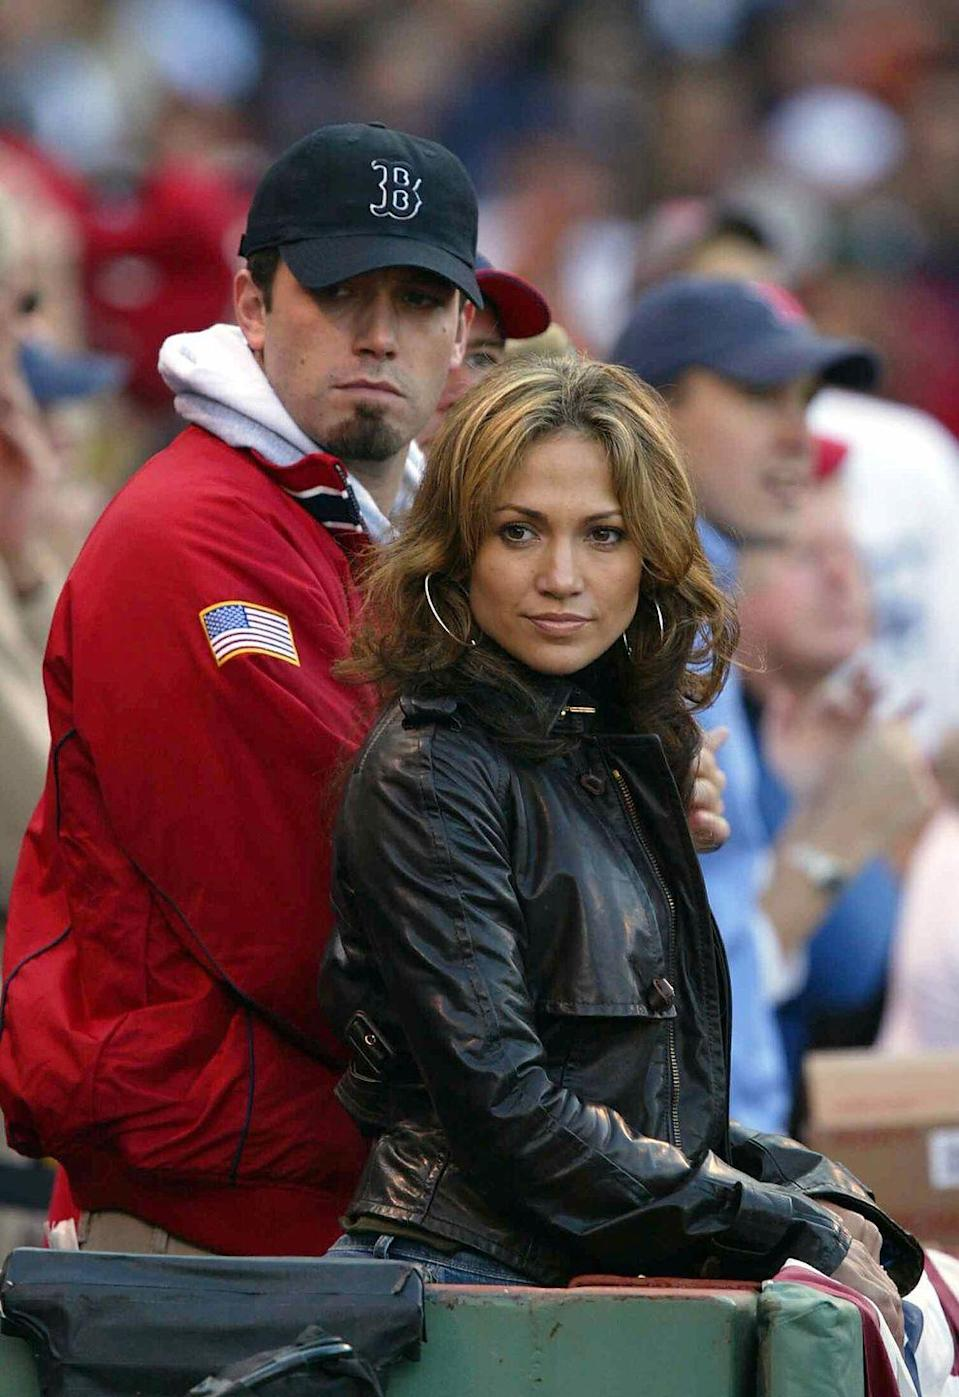 <p>The facial hair. Yikes! Lopez and Affleck watch the New York Yankees take on the Boston Red Sox during Game 3 of the 2003 American League Championship Series on October 11, 2003 at Fenway Park.</p>